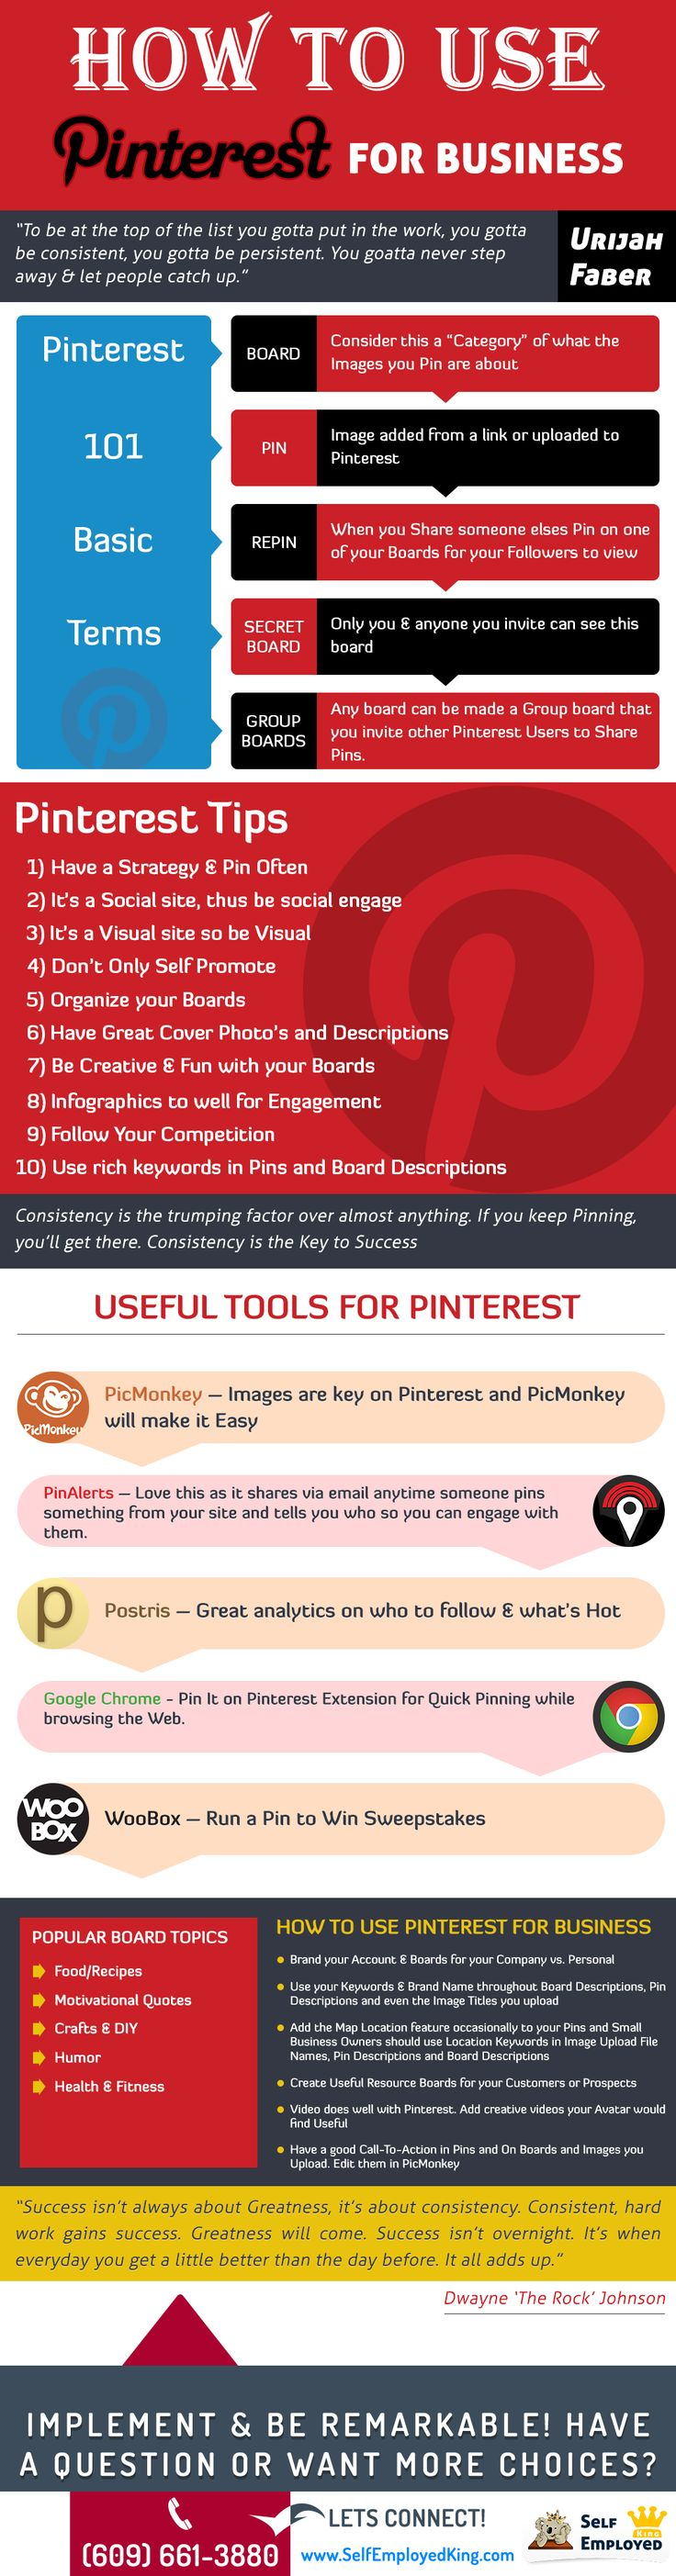 How to Use #Pinterest For #Business - #Infographic